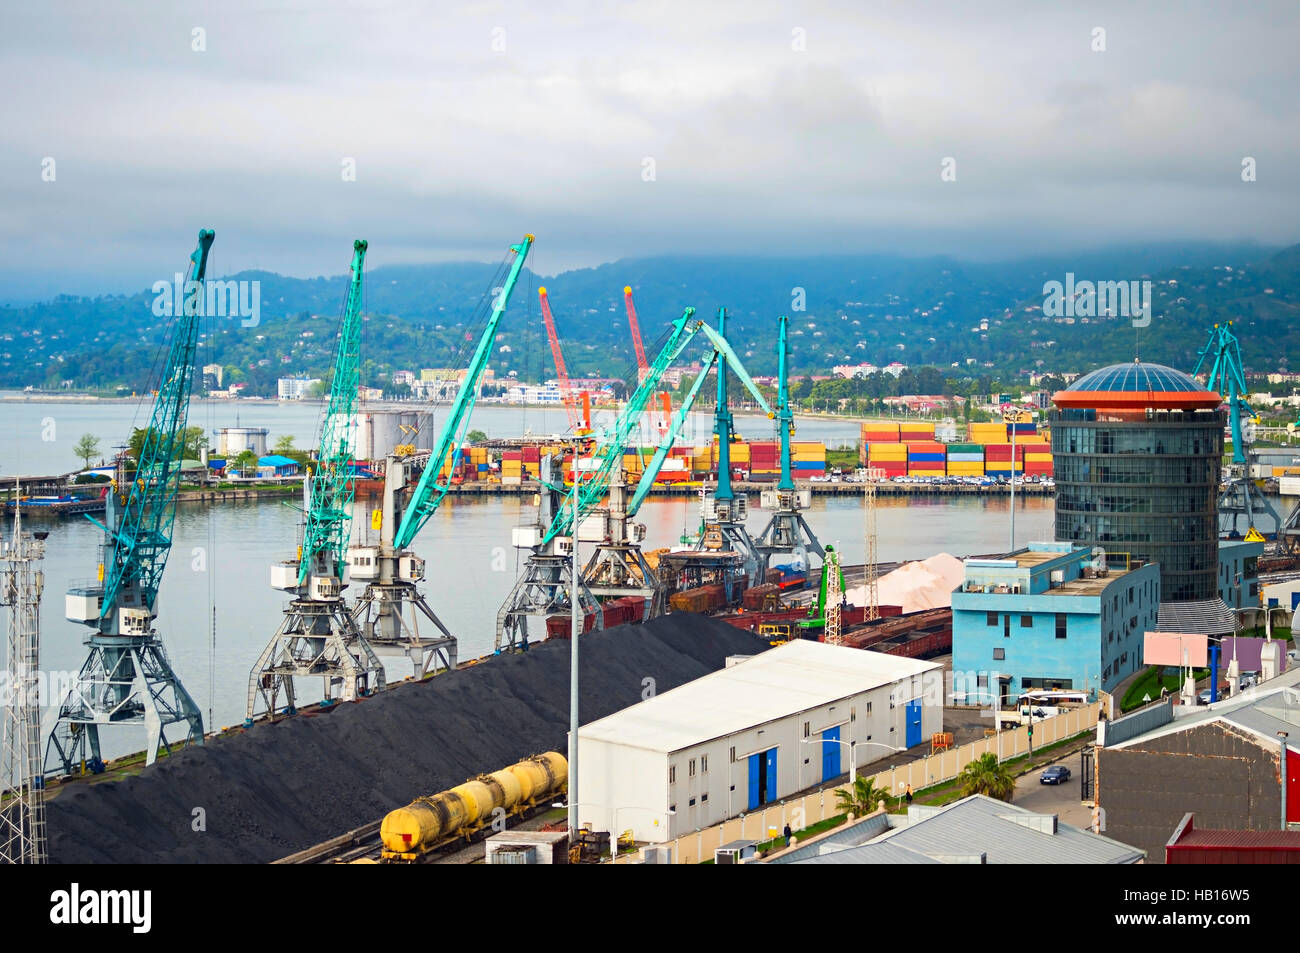 Batumi commercial port, Georgia - Stock Image